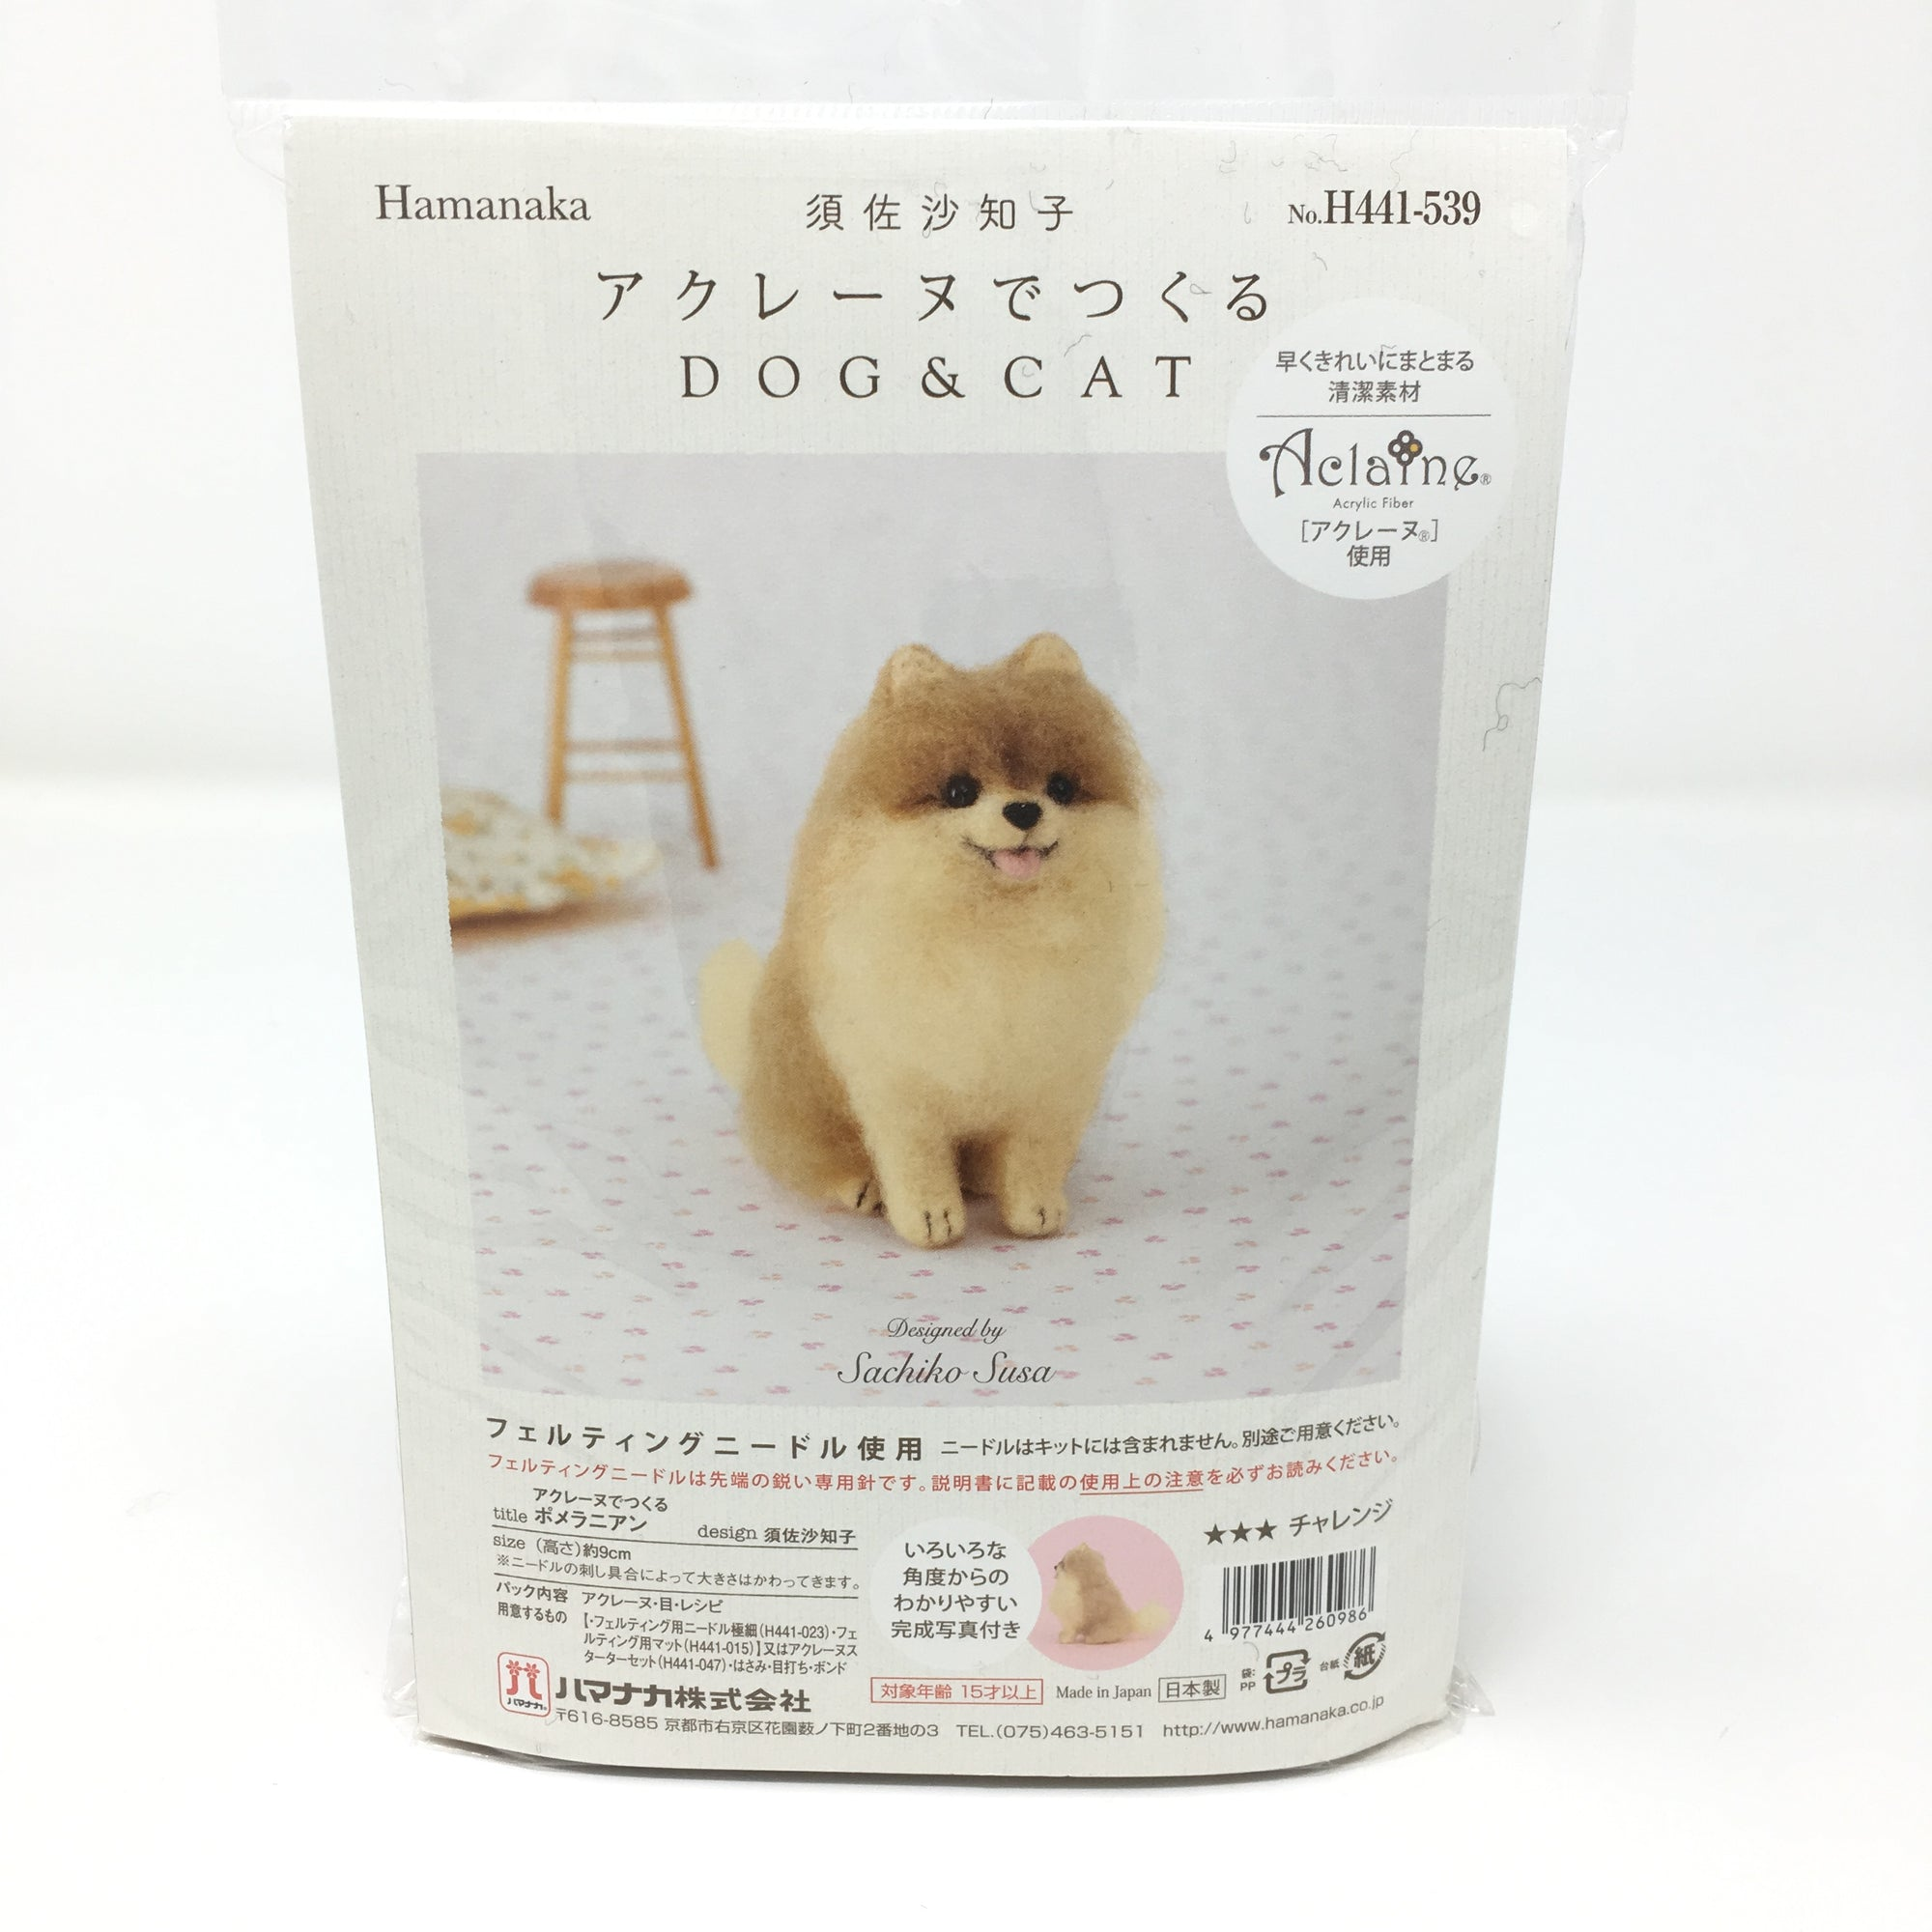 Hamanaka Aclaine Acrylic Fibre Needle Felting Kit - Pomeranian (English)